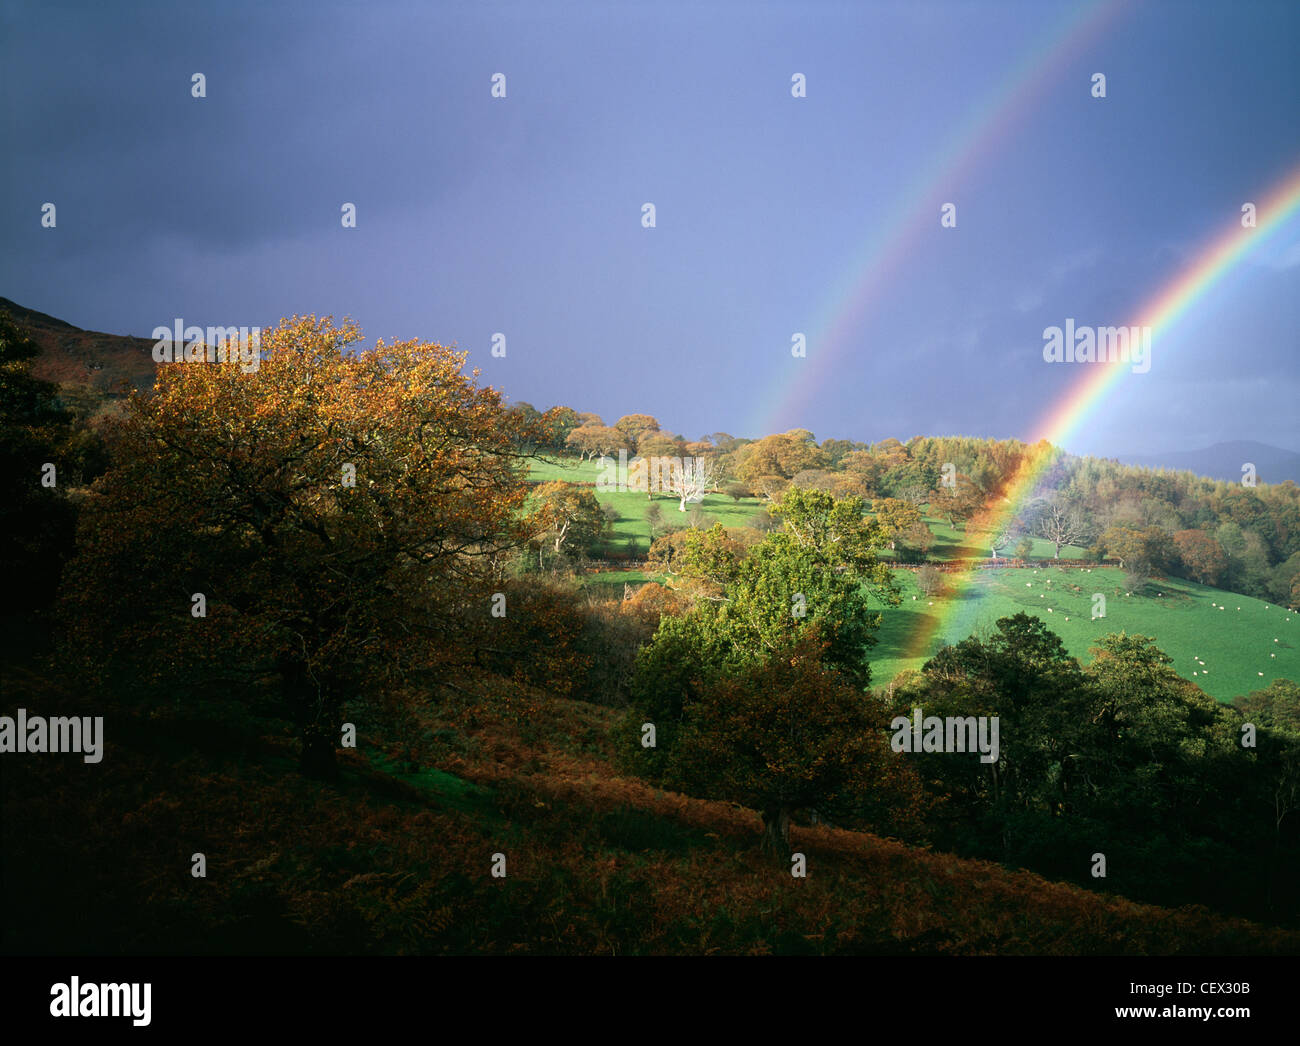 Storm light with double rainbow against dark skies over Welsh hills. - Stock Image